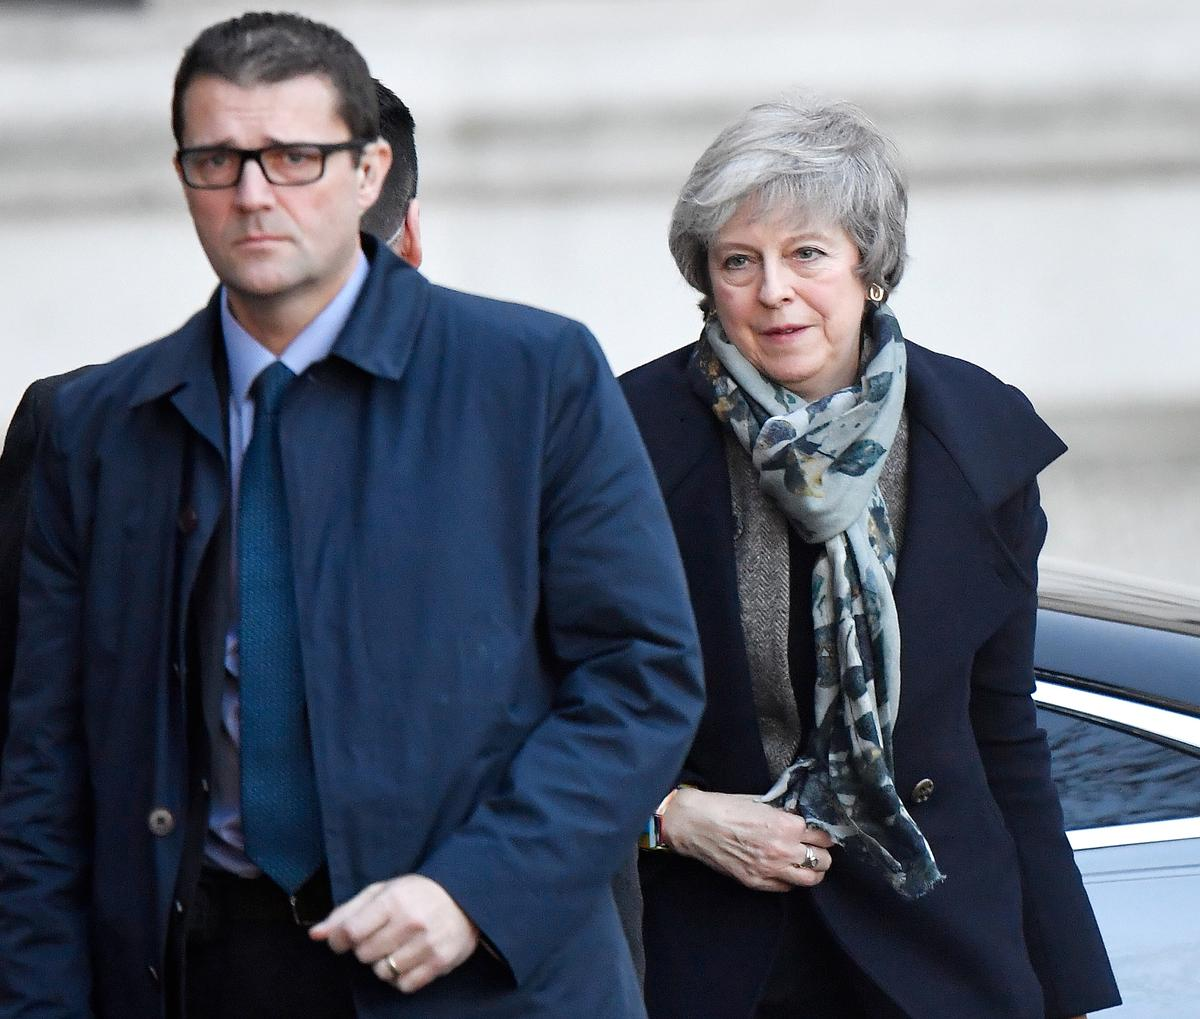 Rejecting other Brexit options, May sticks by her deal